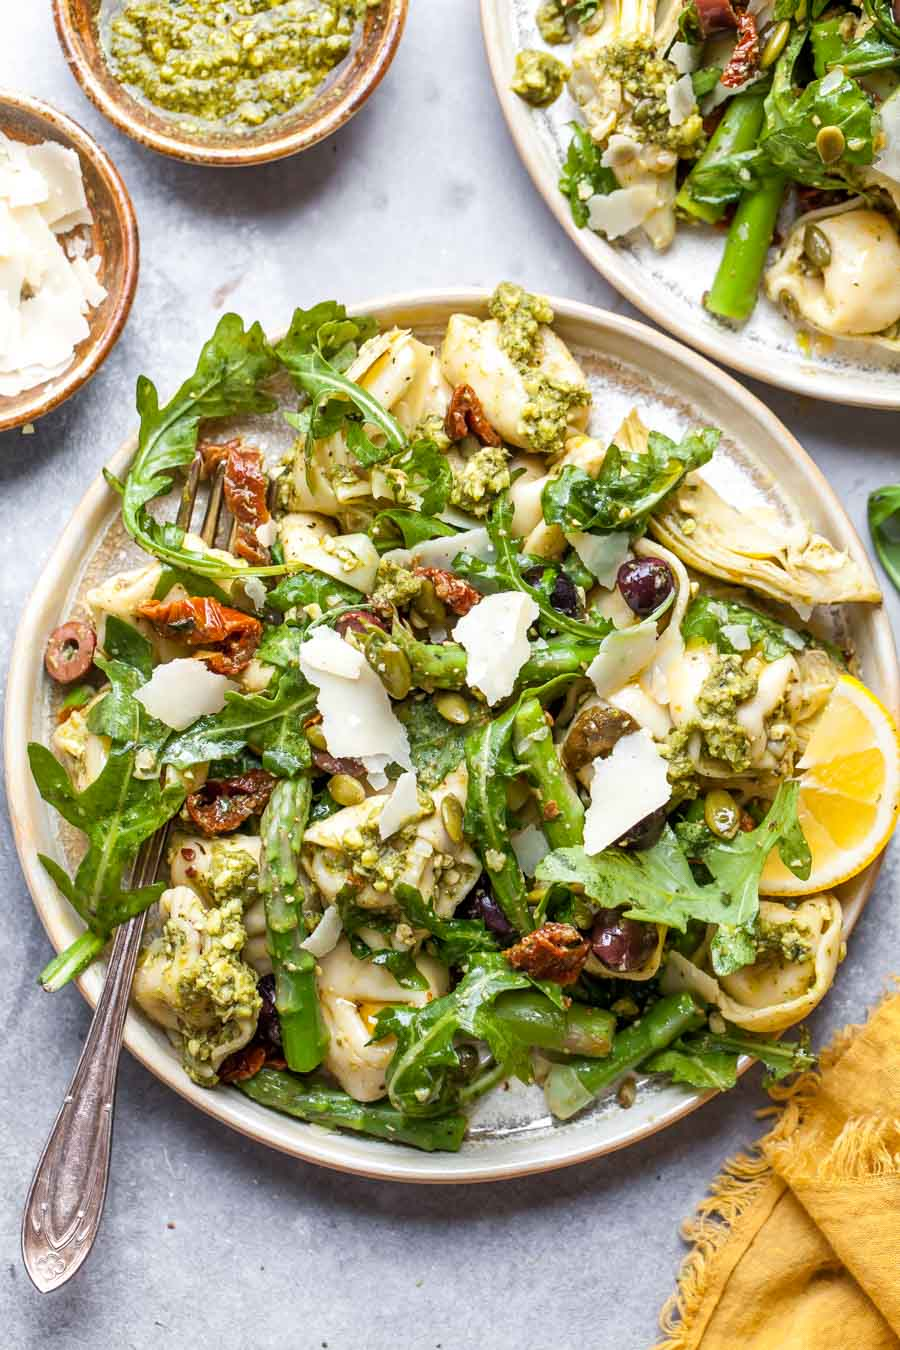 Easy Tortellini Salad with Mediterranean Veggies and Pesto Sauce